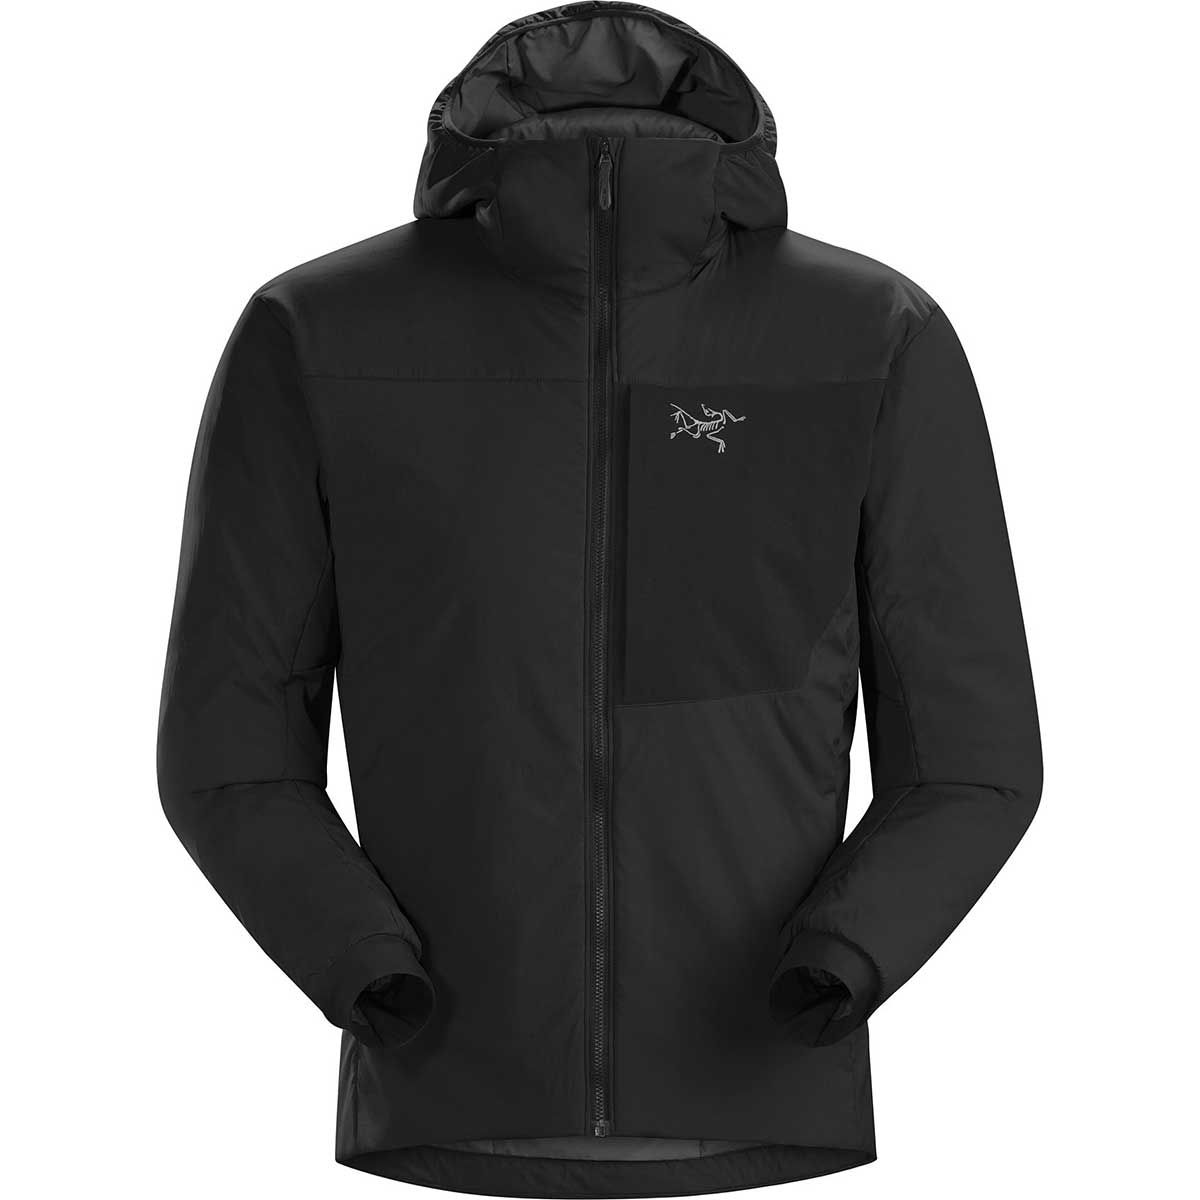 Arcteryx men's Proton LT Hoody in Black front view